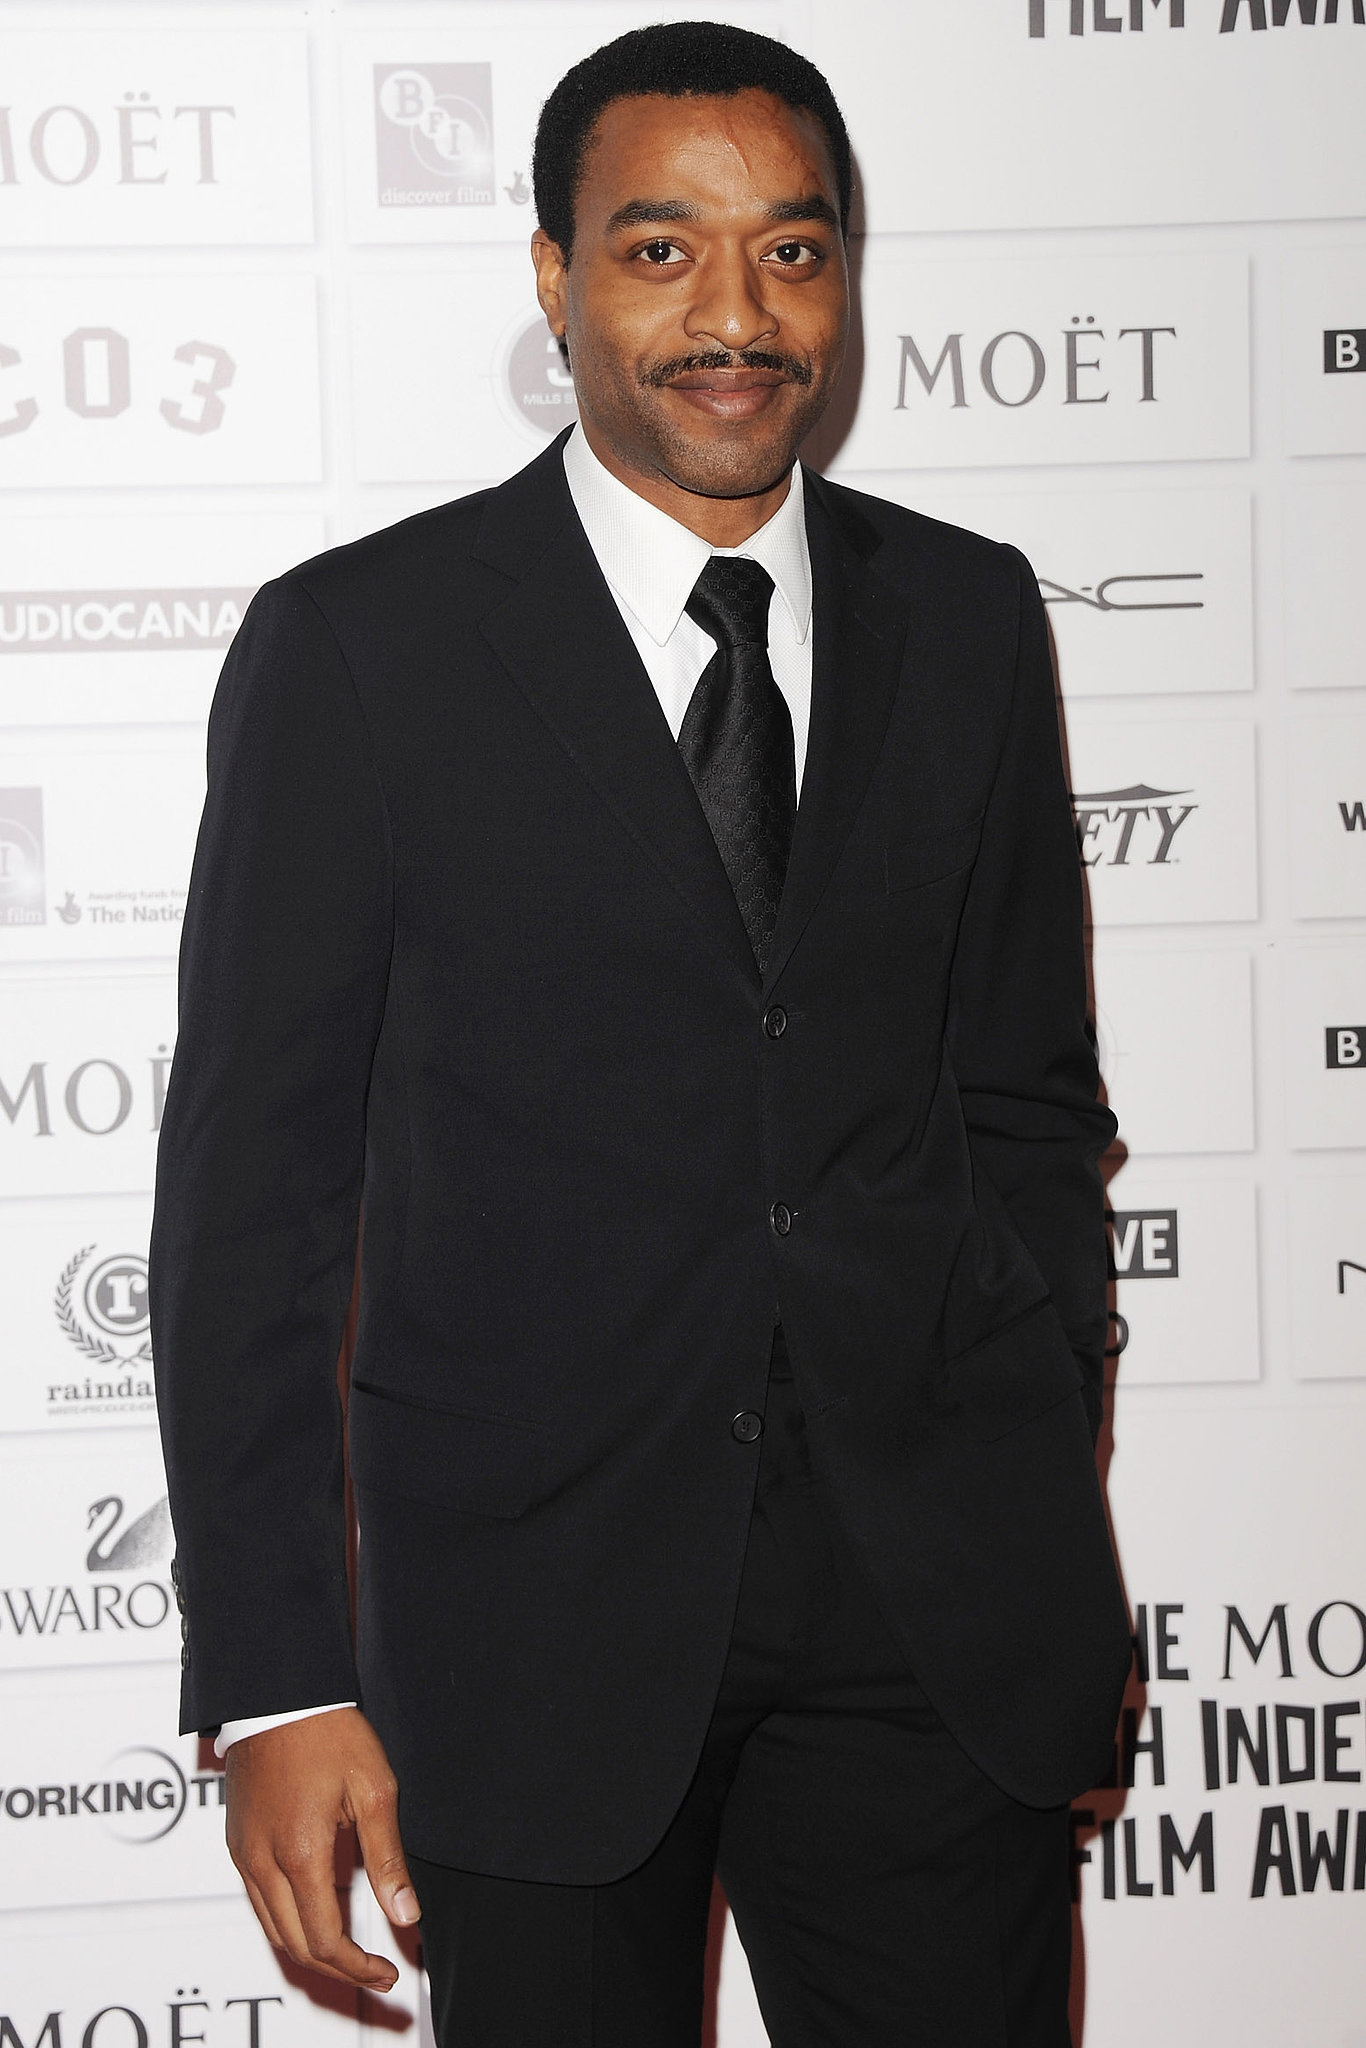 Joe Wright will direct 12 Years a Slave star Chiwetel Ejiofor in A Season in the Congo, an adaptation of the stage play.